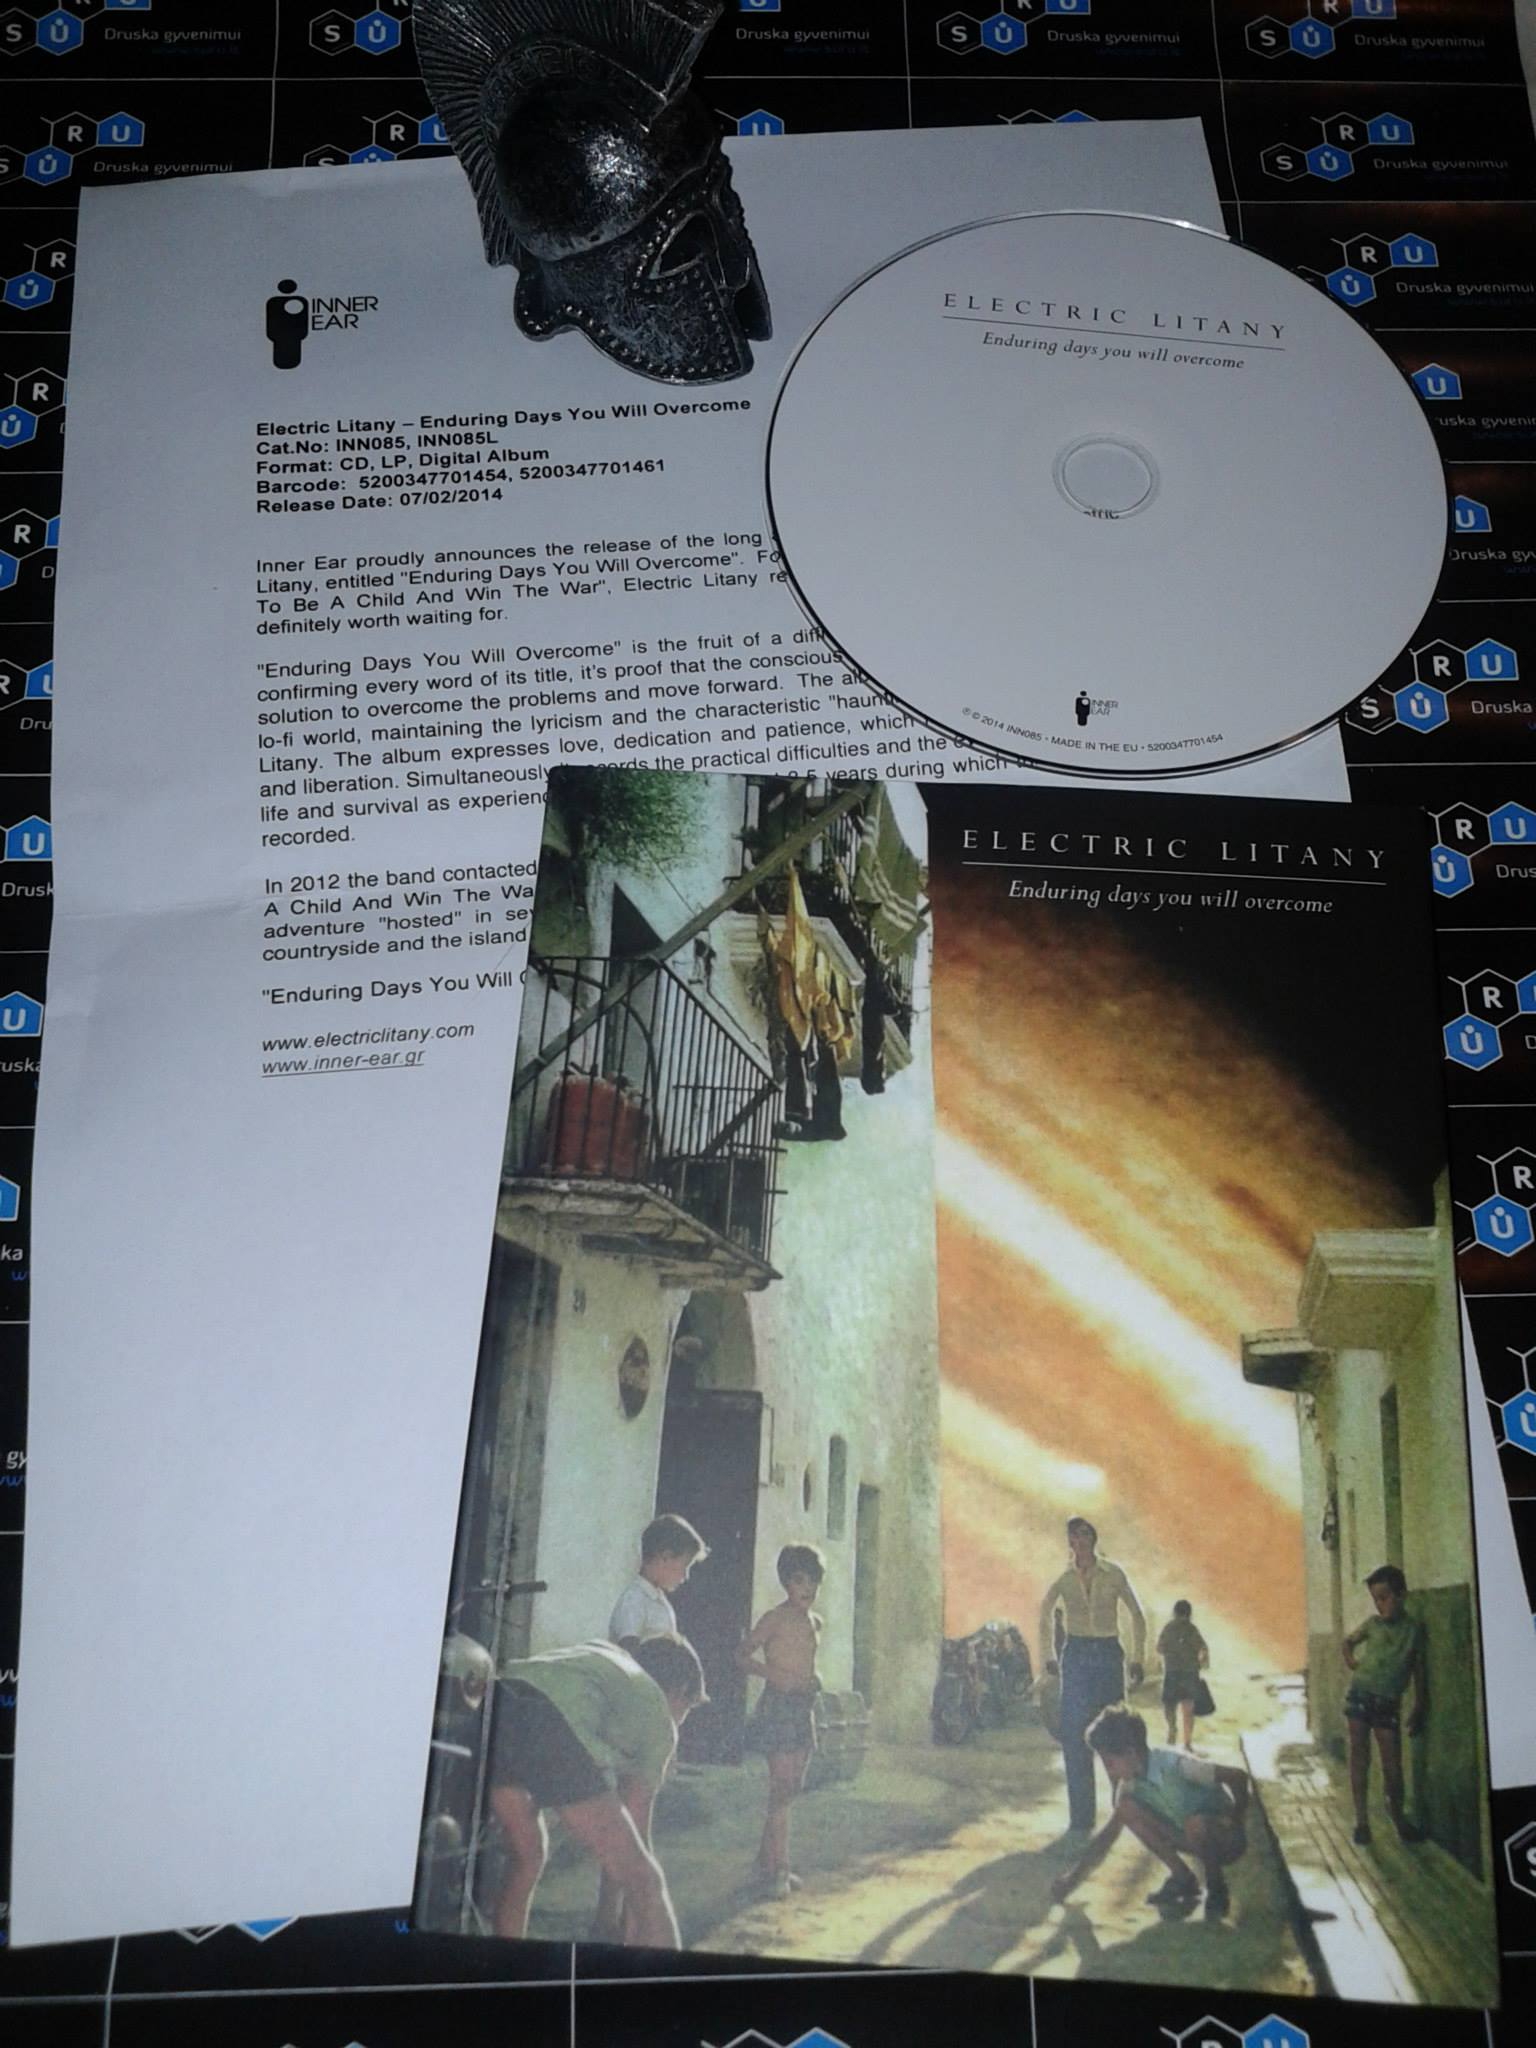 Electric_Litany_-_Enduring_Days_You_Will_Overcome_promo